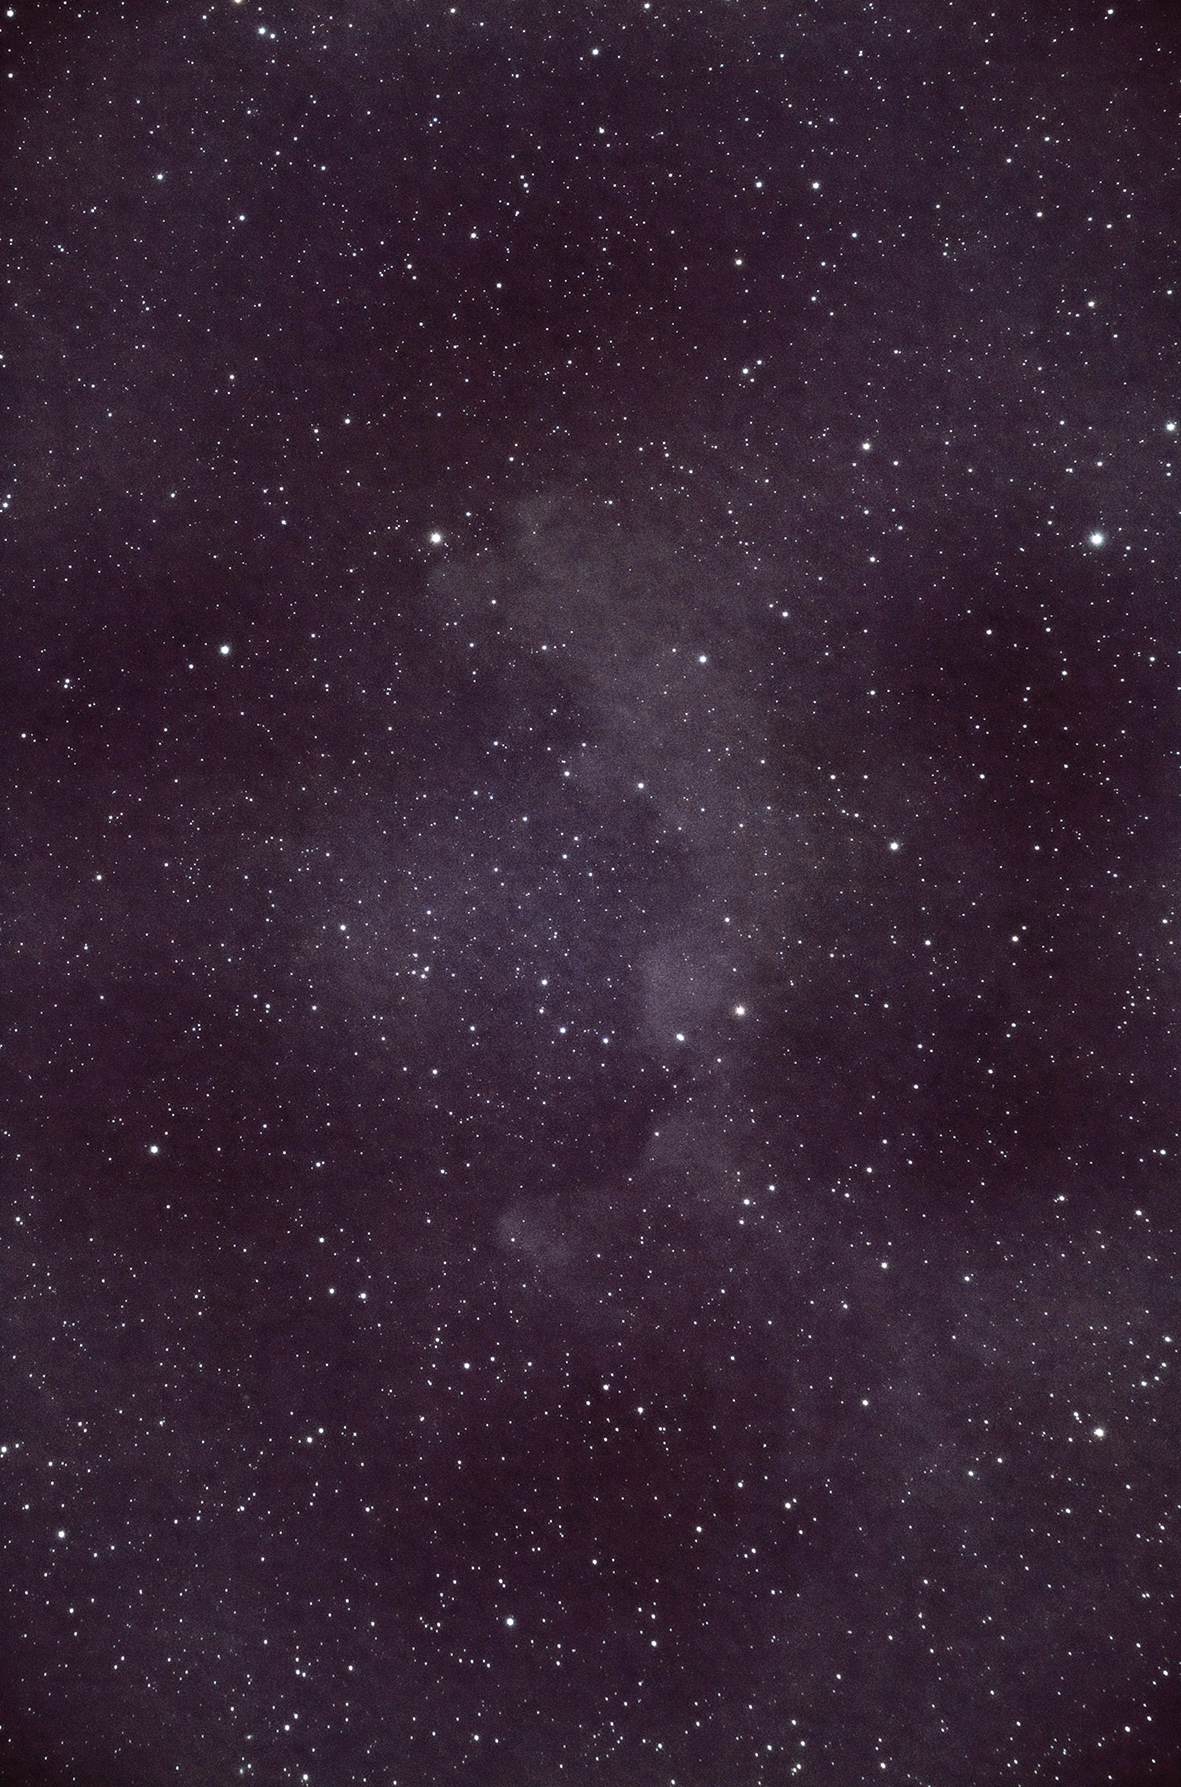 NGC_1909.png.c3498d06e91592161ee334ad74102075.png